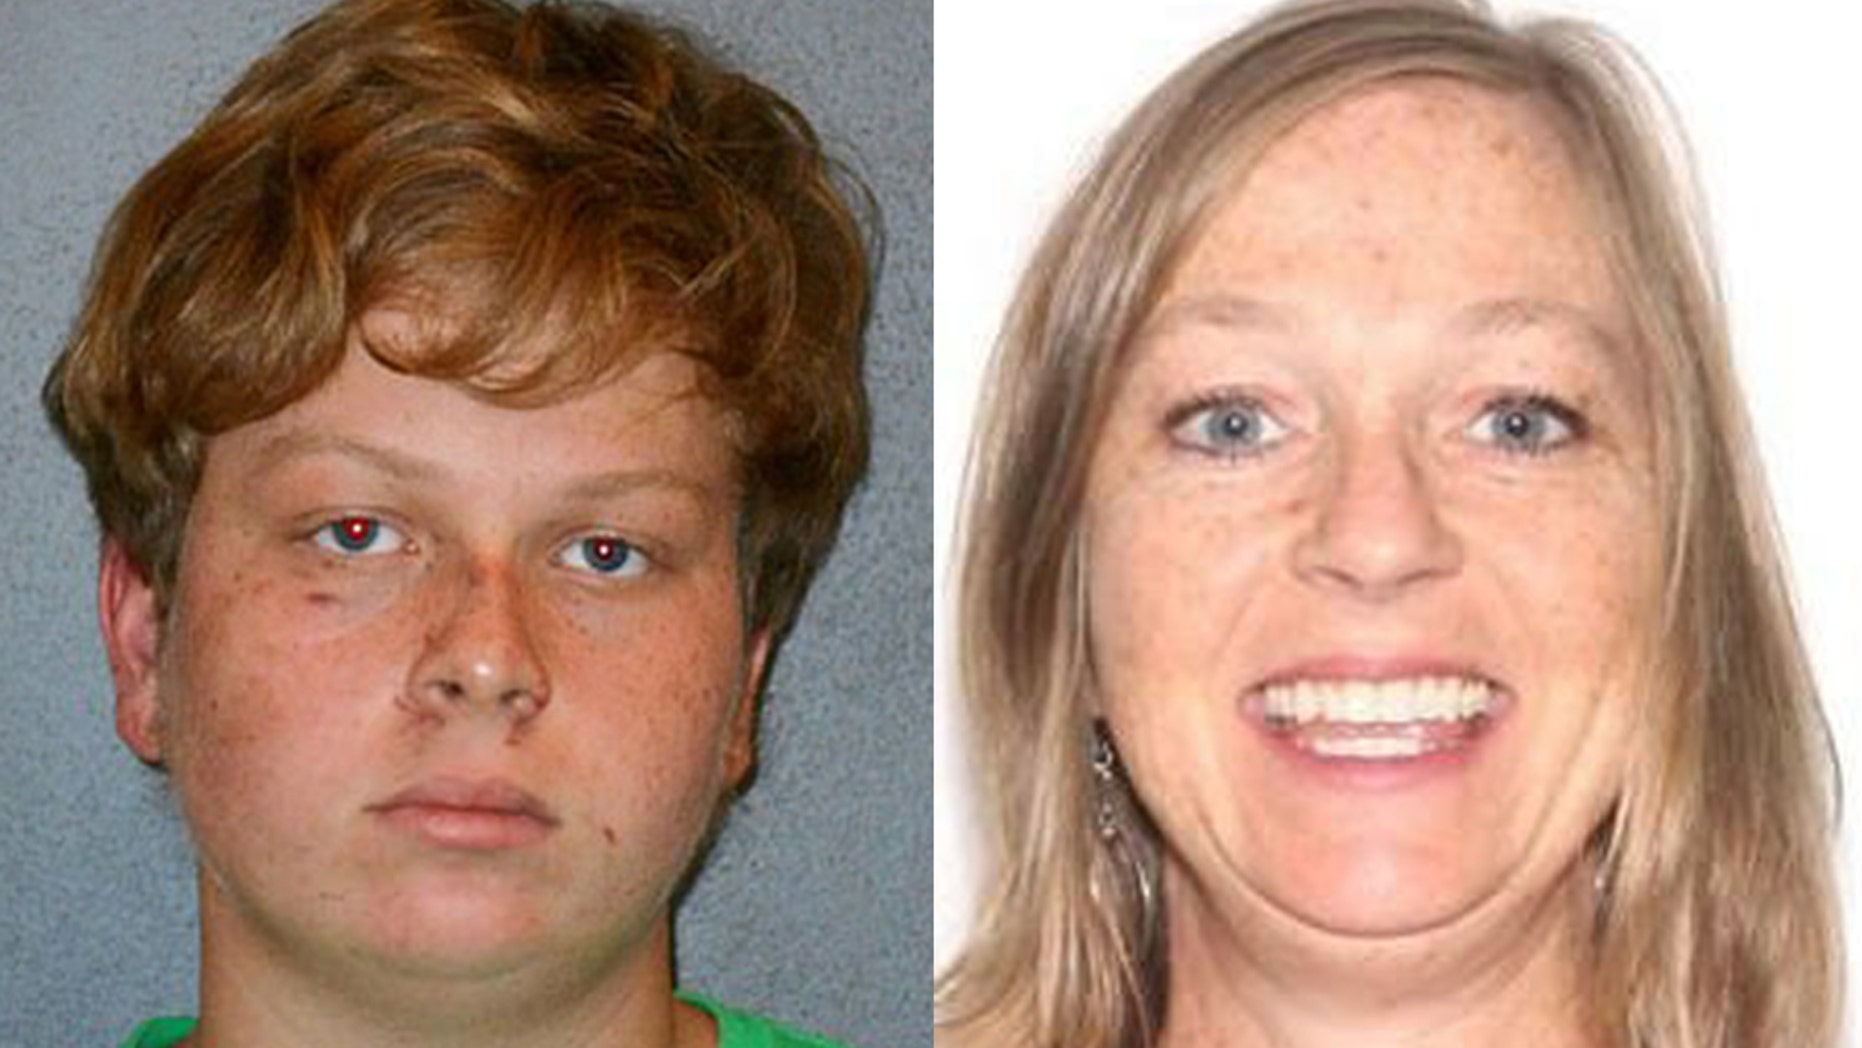 'Soulless' teen murdered mom after argument over bad grade: cops